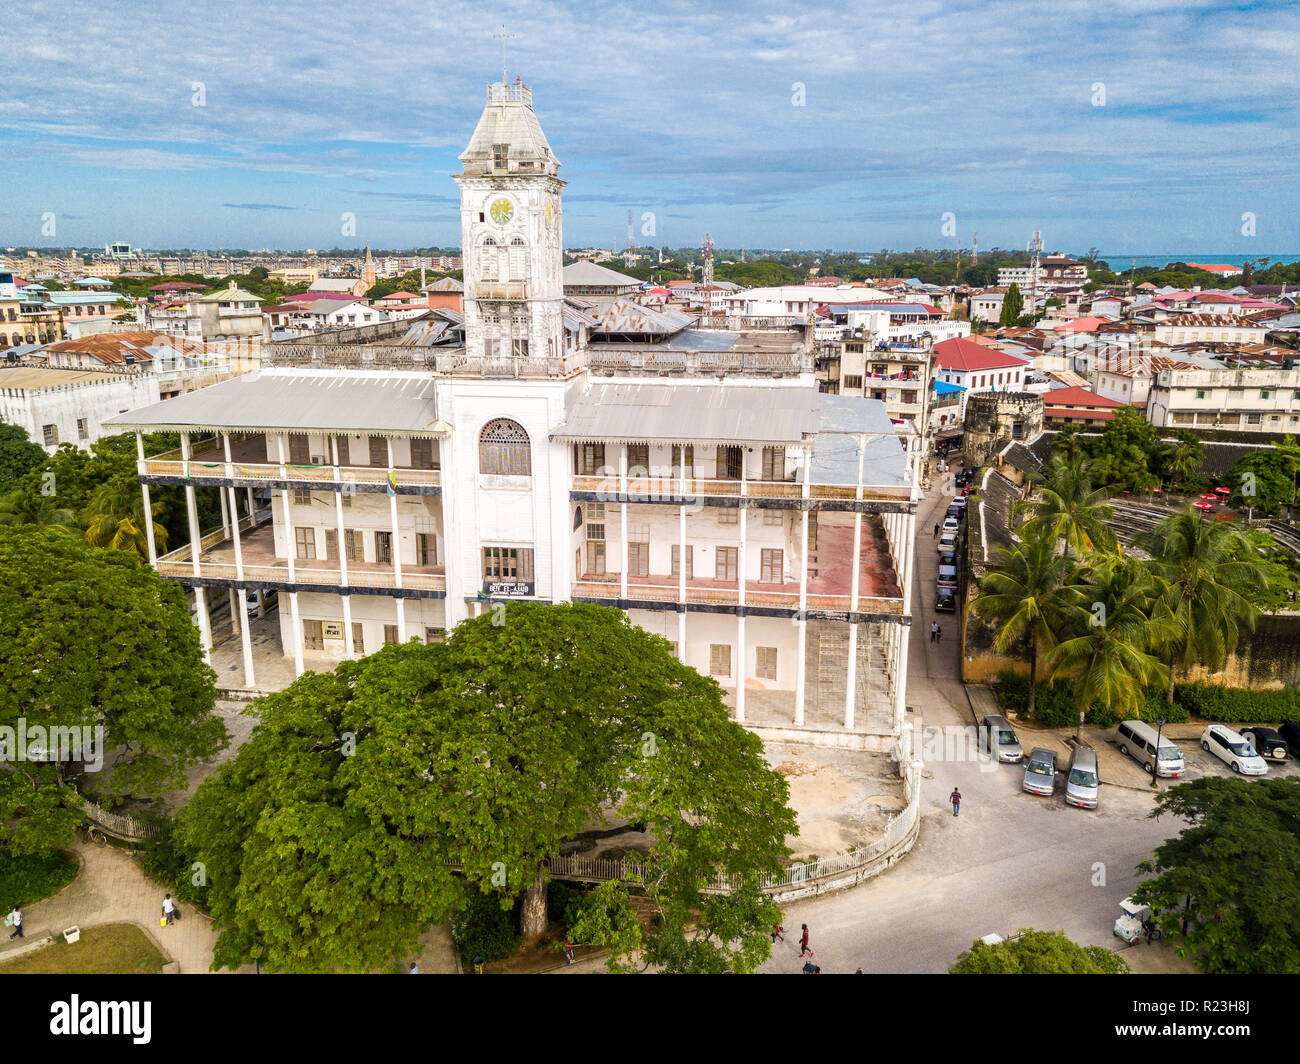 The House of Wonders. Stone Town, old colonial center of Zanzibar City, Unguja island, Tanzania. Aerial drone photo. - Stock Image